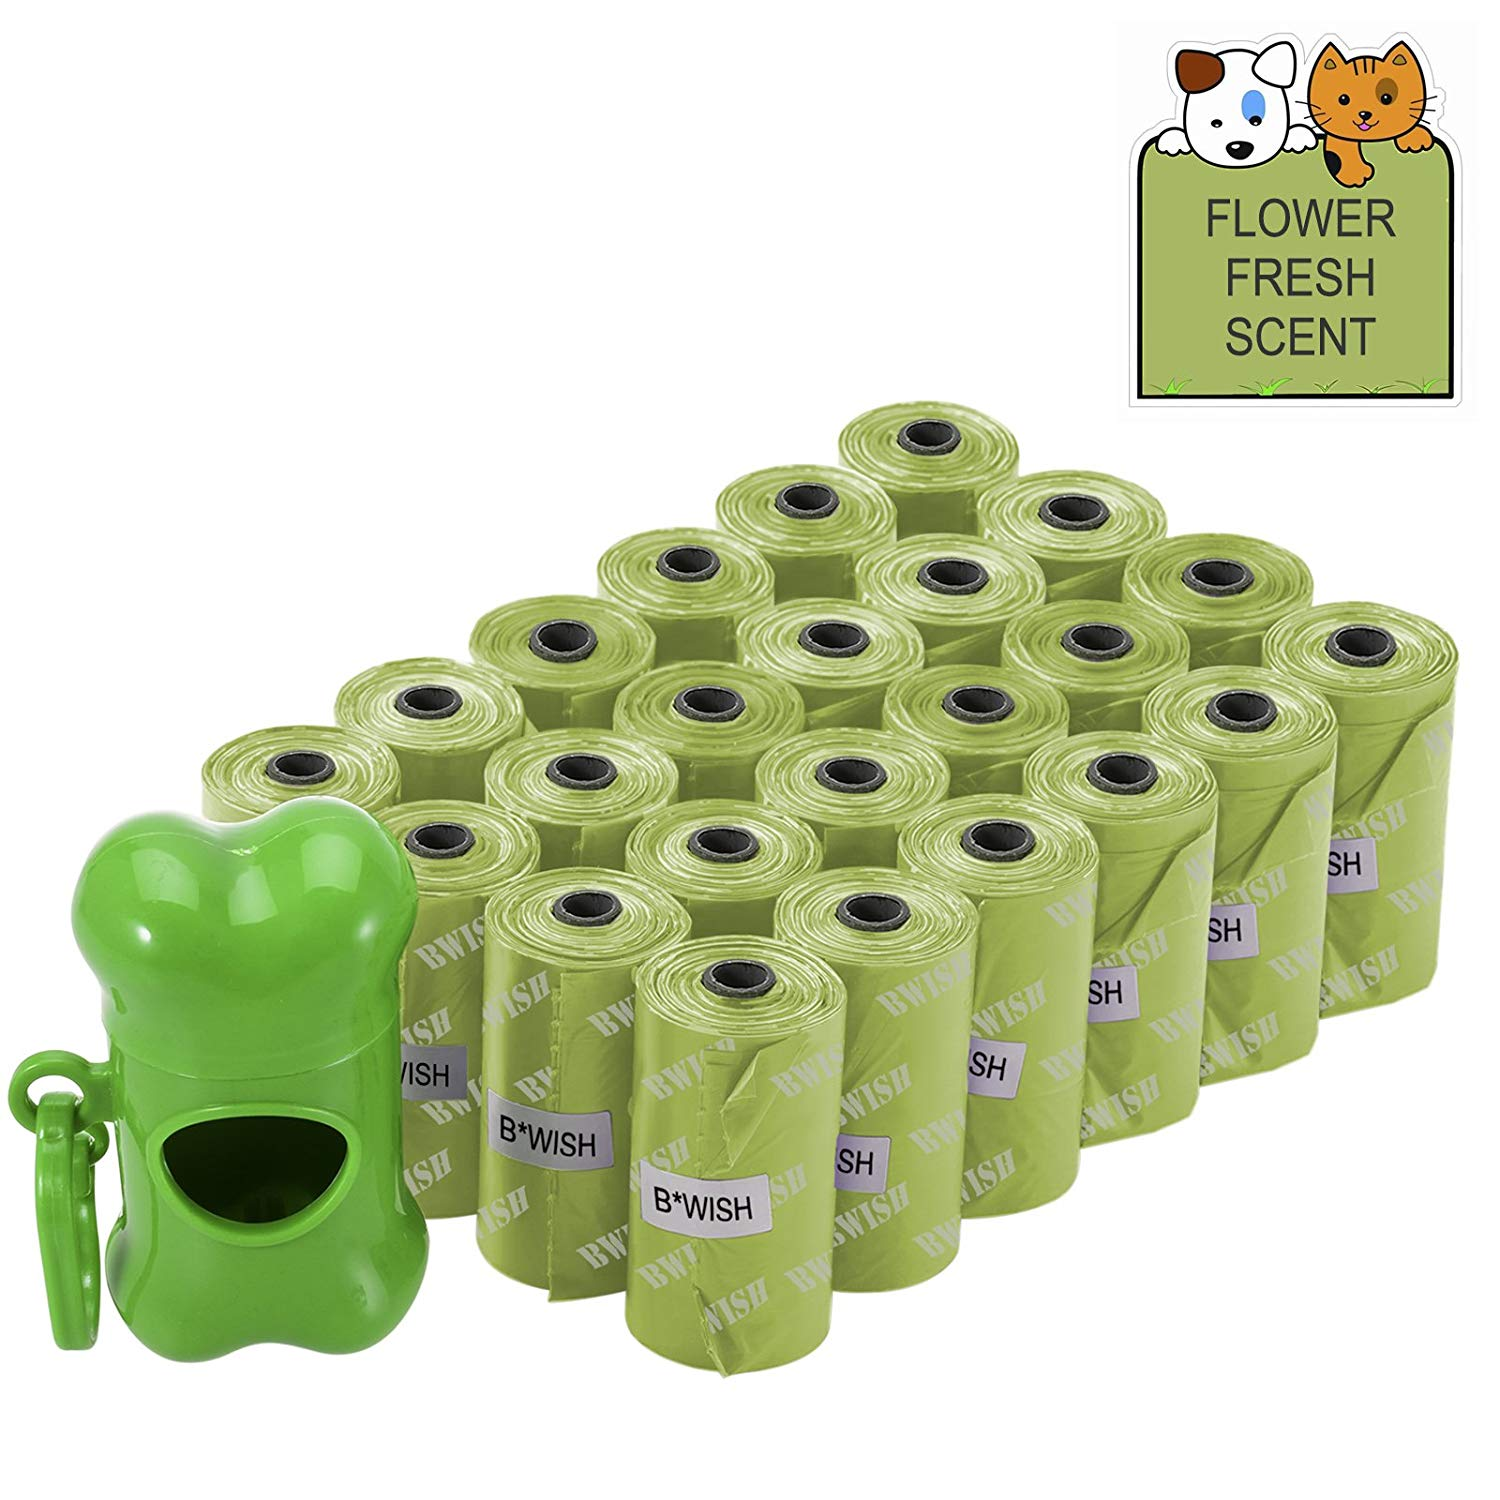 BWISH 360 Count Pet Puppy Waste Bag Pouch Durable Biodegradable Environment-Friendly Dog Waste Bag, Scented Poop Bag ,Dispenser and Clip Included (15 Bags/Roll, 24 Rolls)